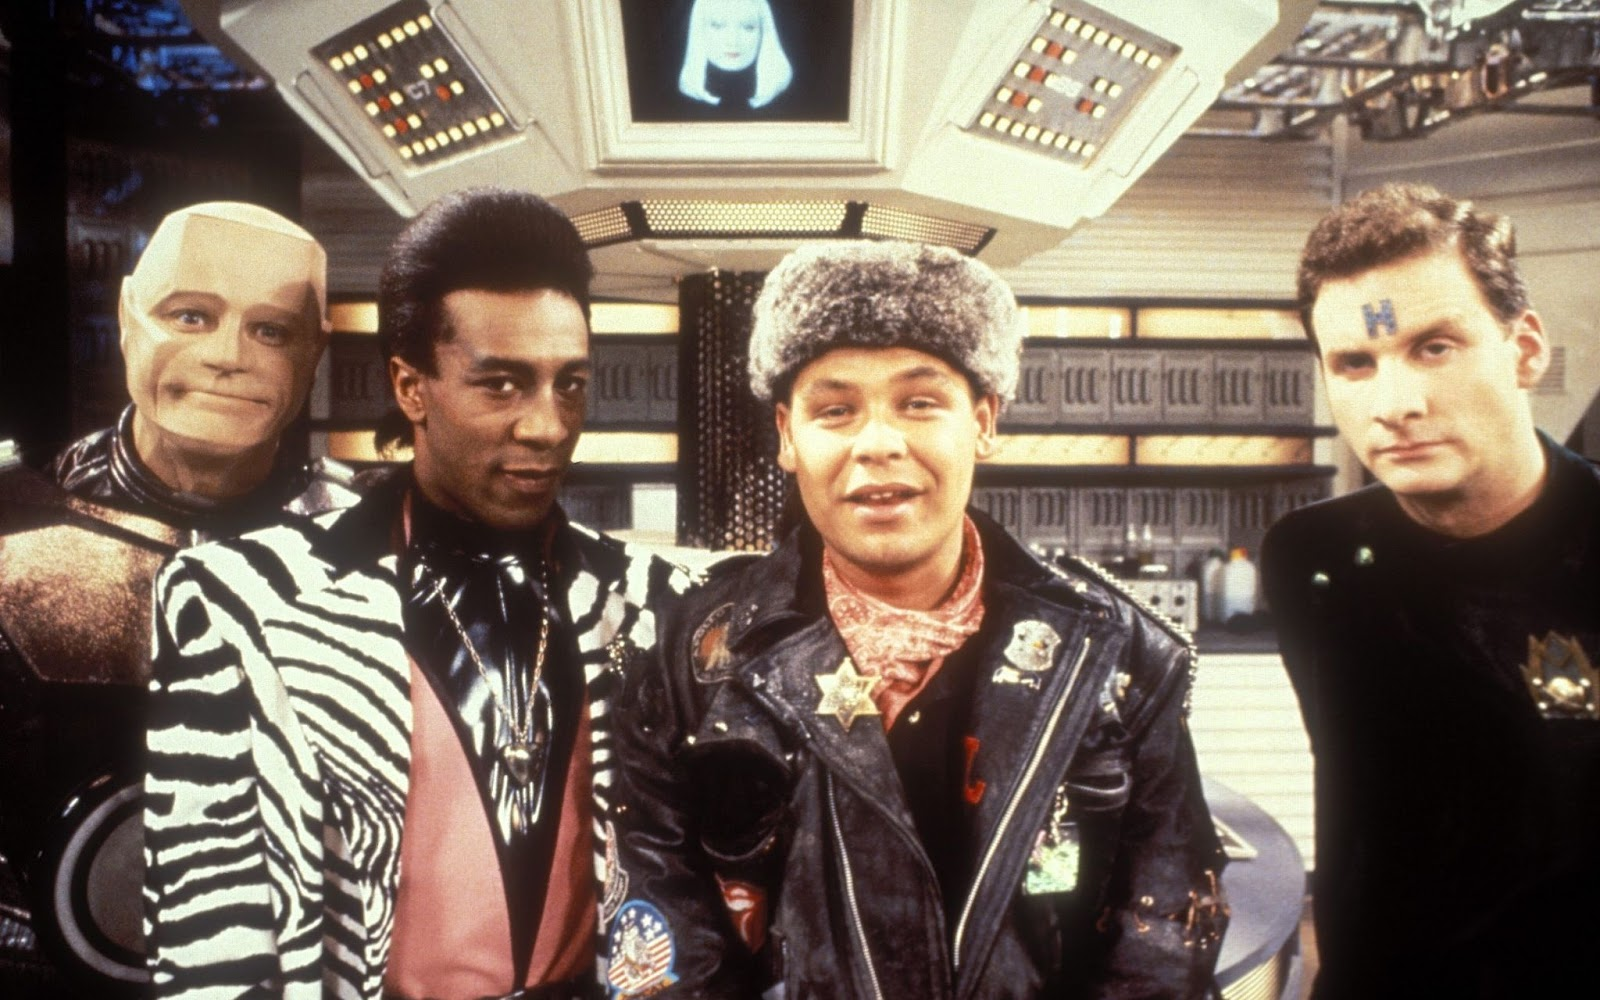 The main characters of Red Dwarf: Kryten, The Cat, Lister and Rimmer.